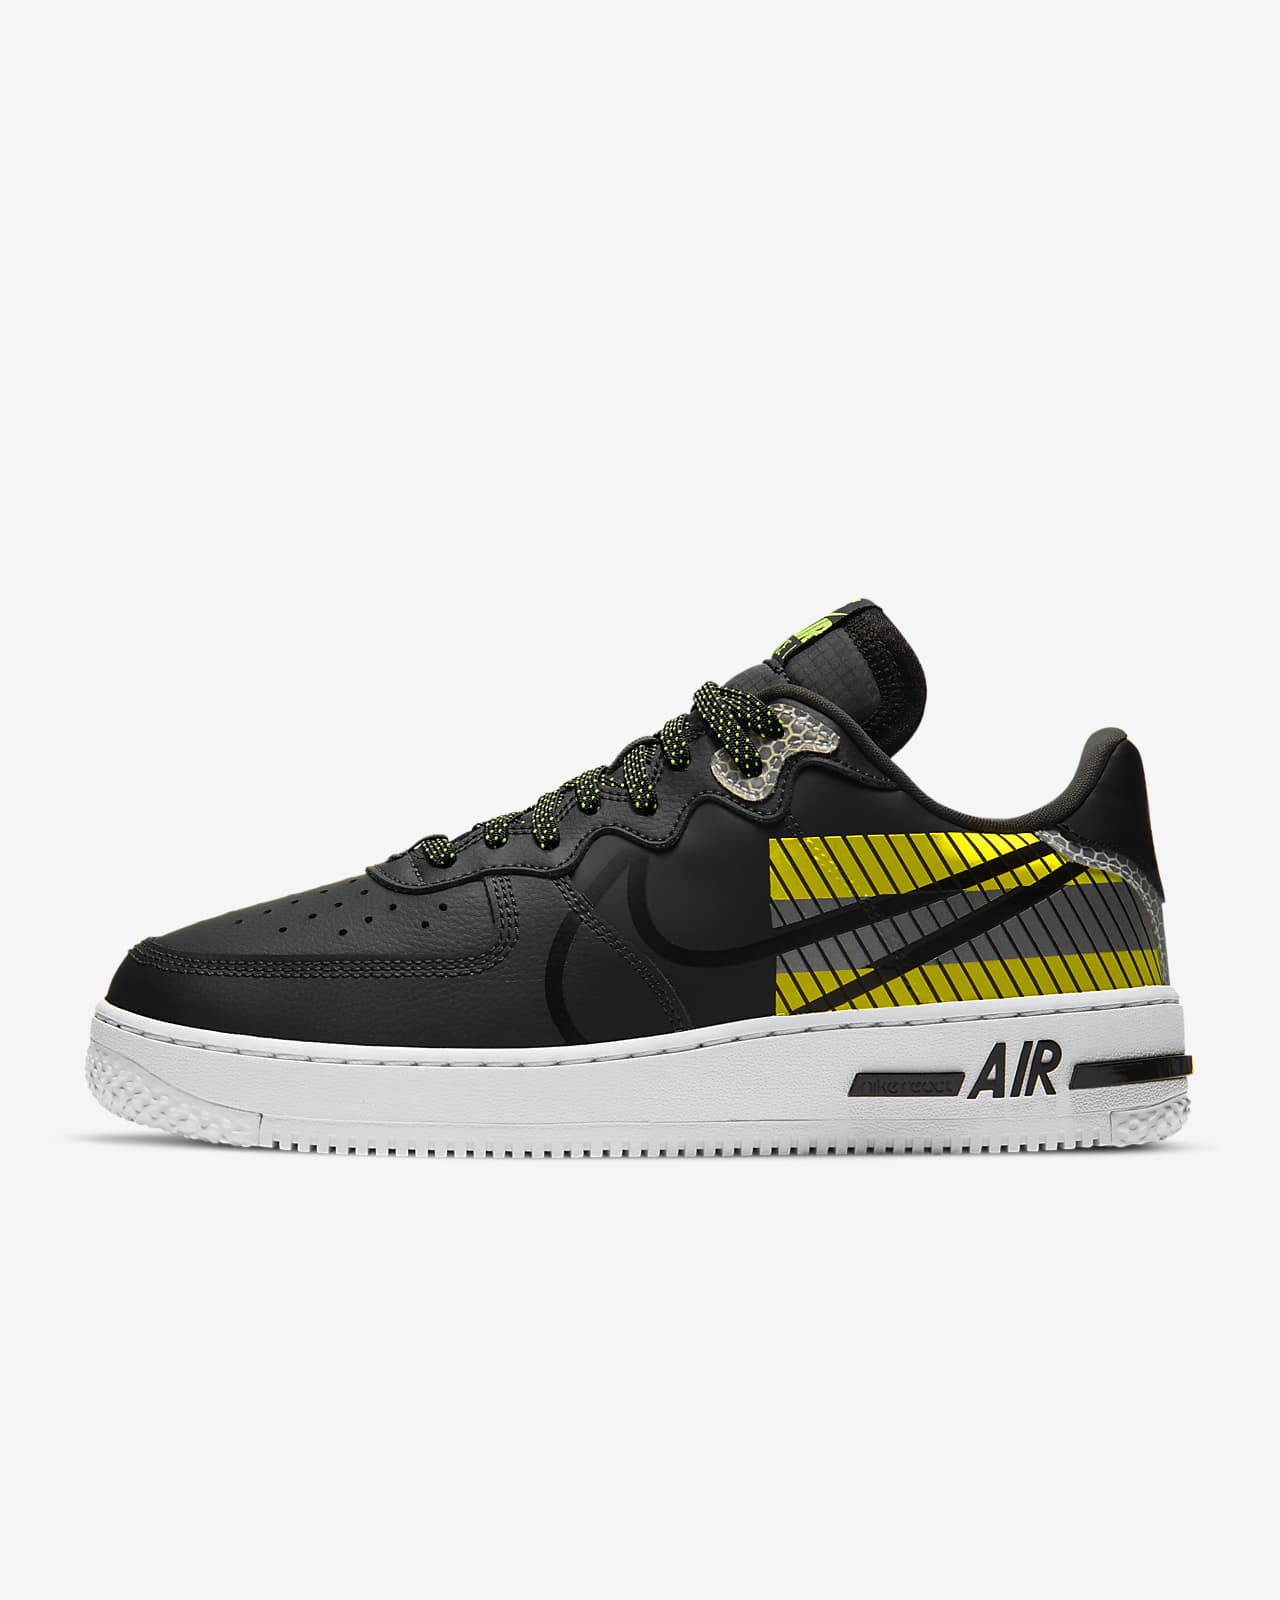 Nike Air Force 1 React LX Men's Shoe